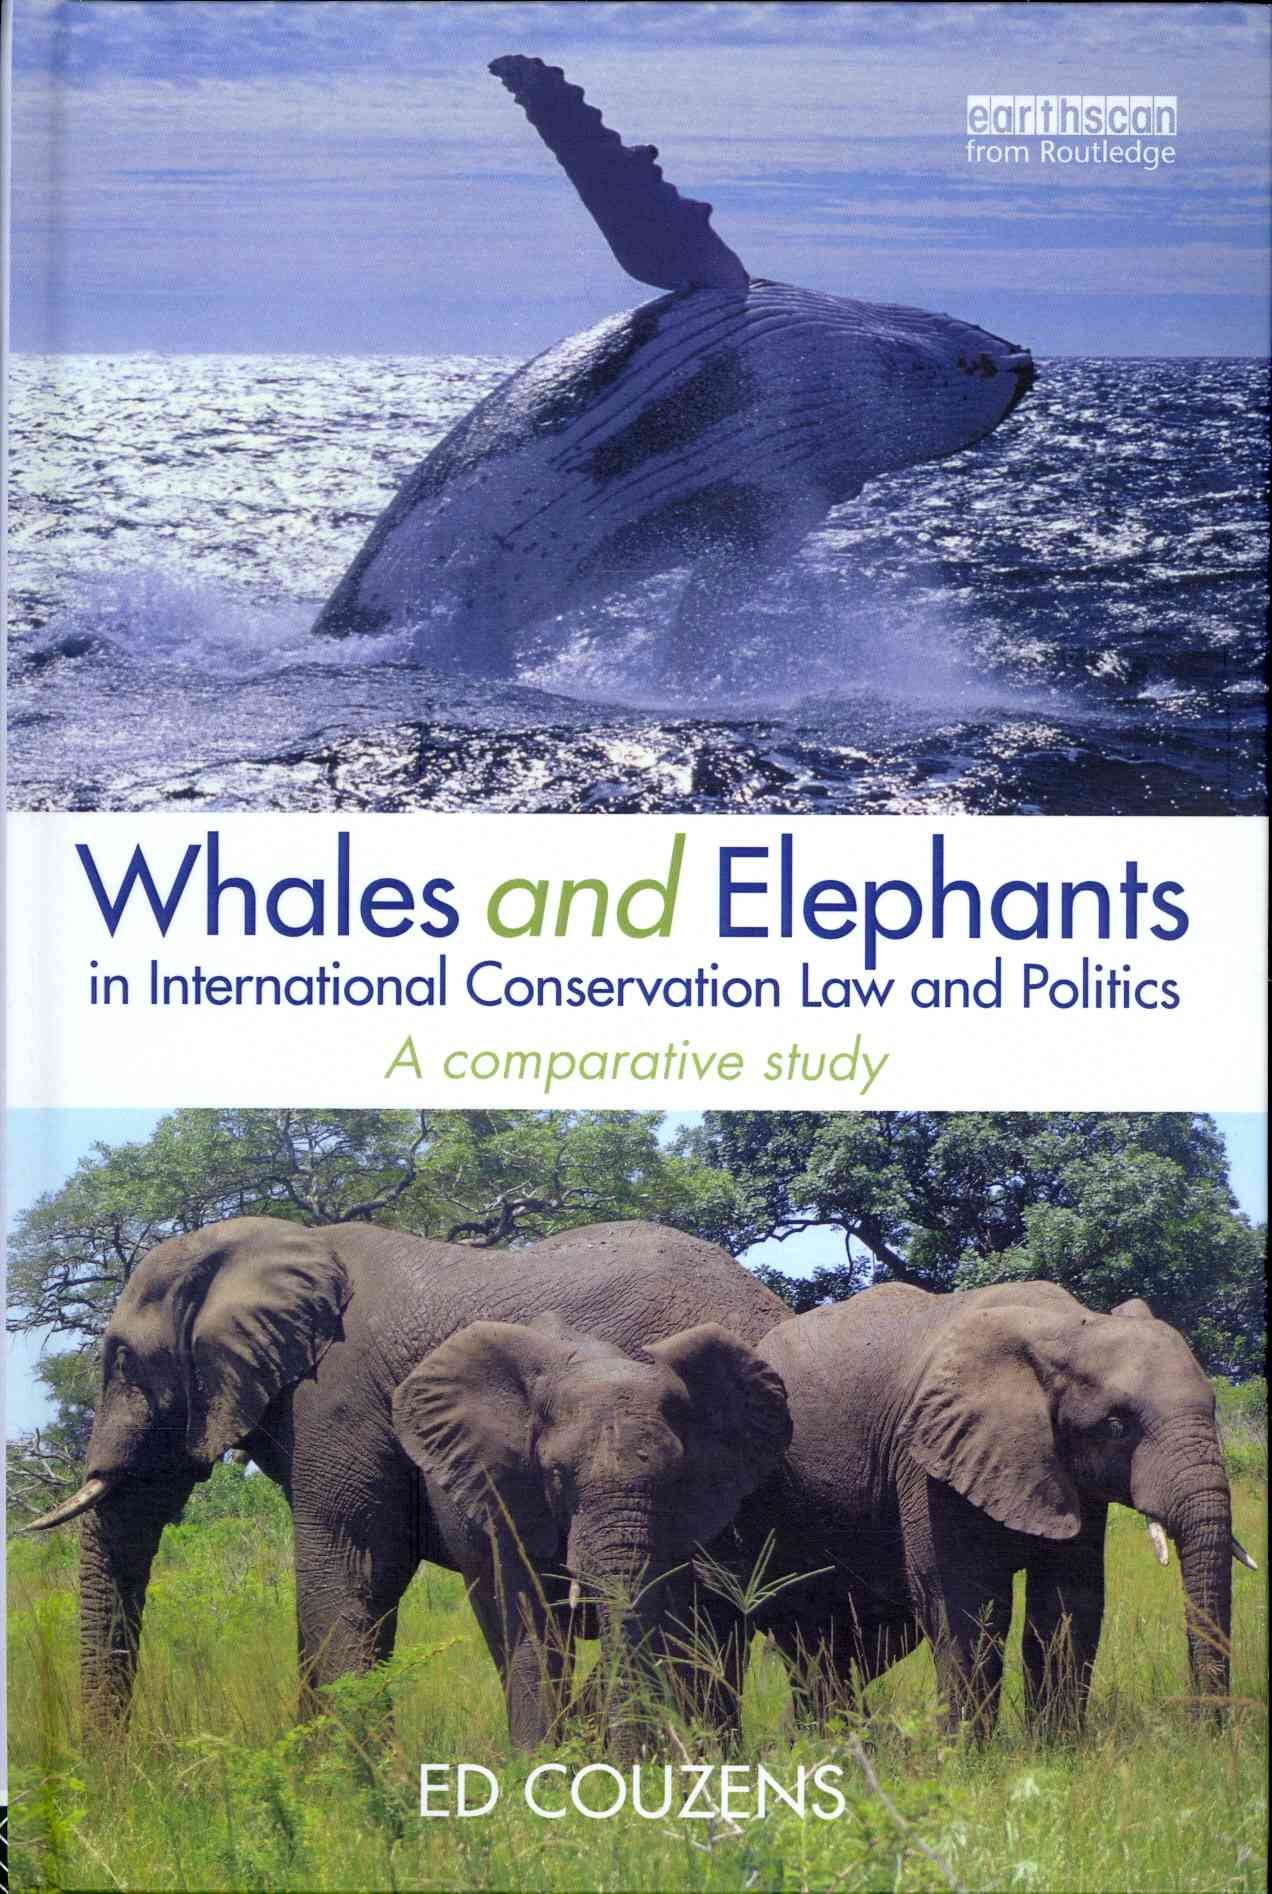 Whales and Elephants in International Conservation Law and Politics: A Comparative Study (Hardcover)